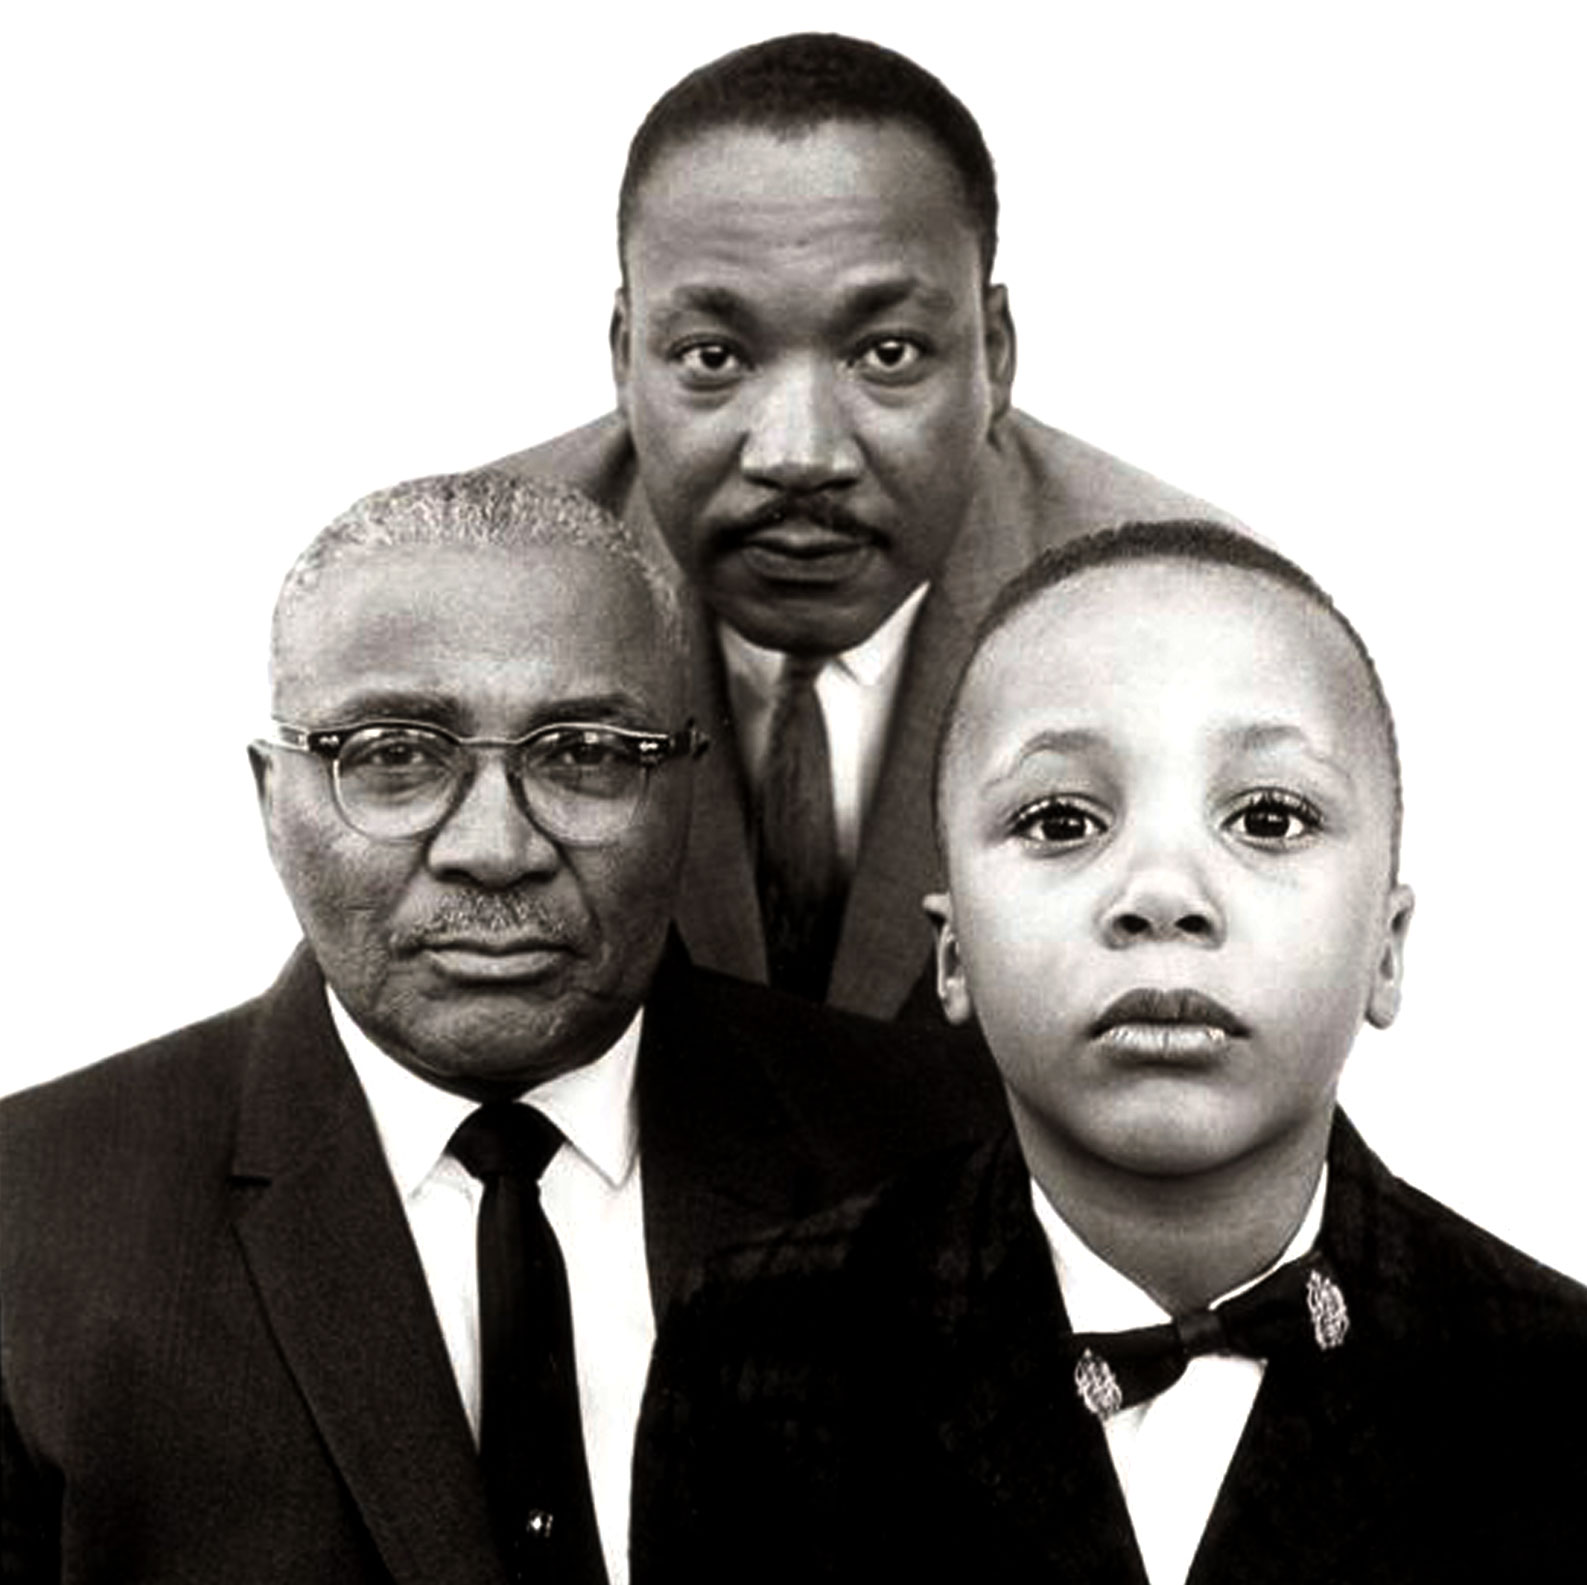 http://1.bp.blogspot.com/-YJ8XWpJ-PcQ/TopZ1oUC9_I/AAAAAAAALR0/BM1PwbZ9C0o/s1600/Martin-Luther-King-Jr-with-Father-and-Son-1963.jpg